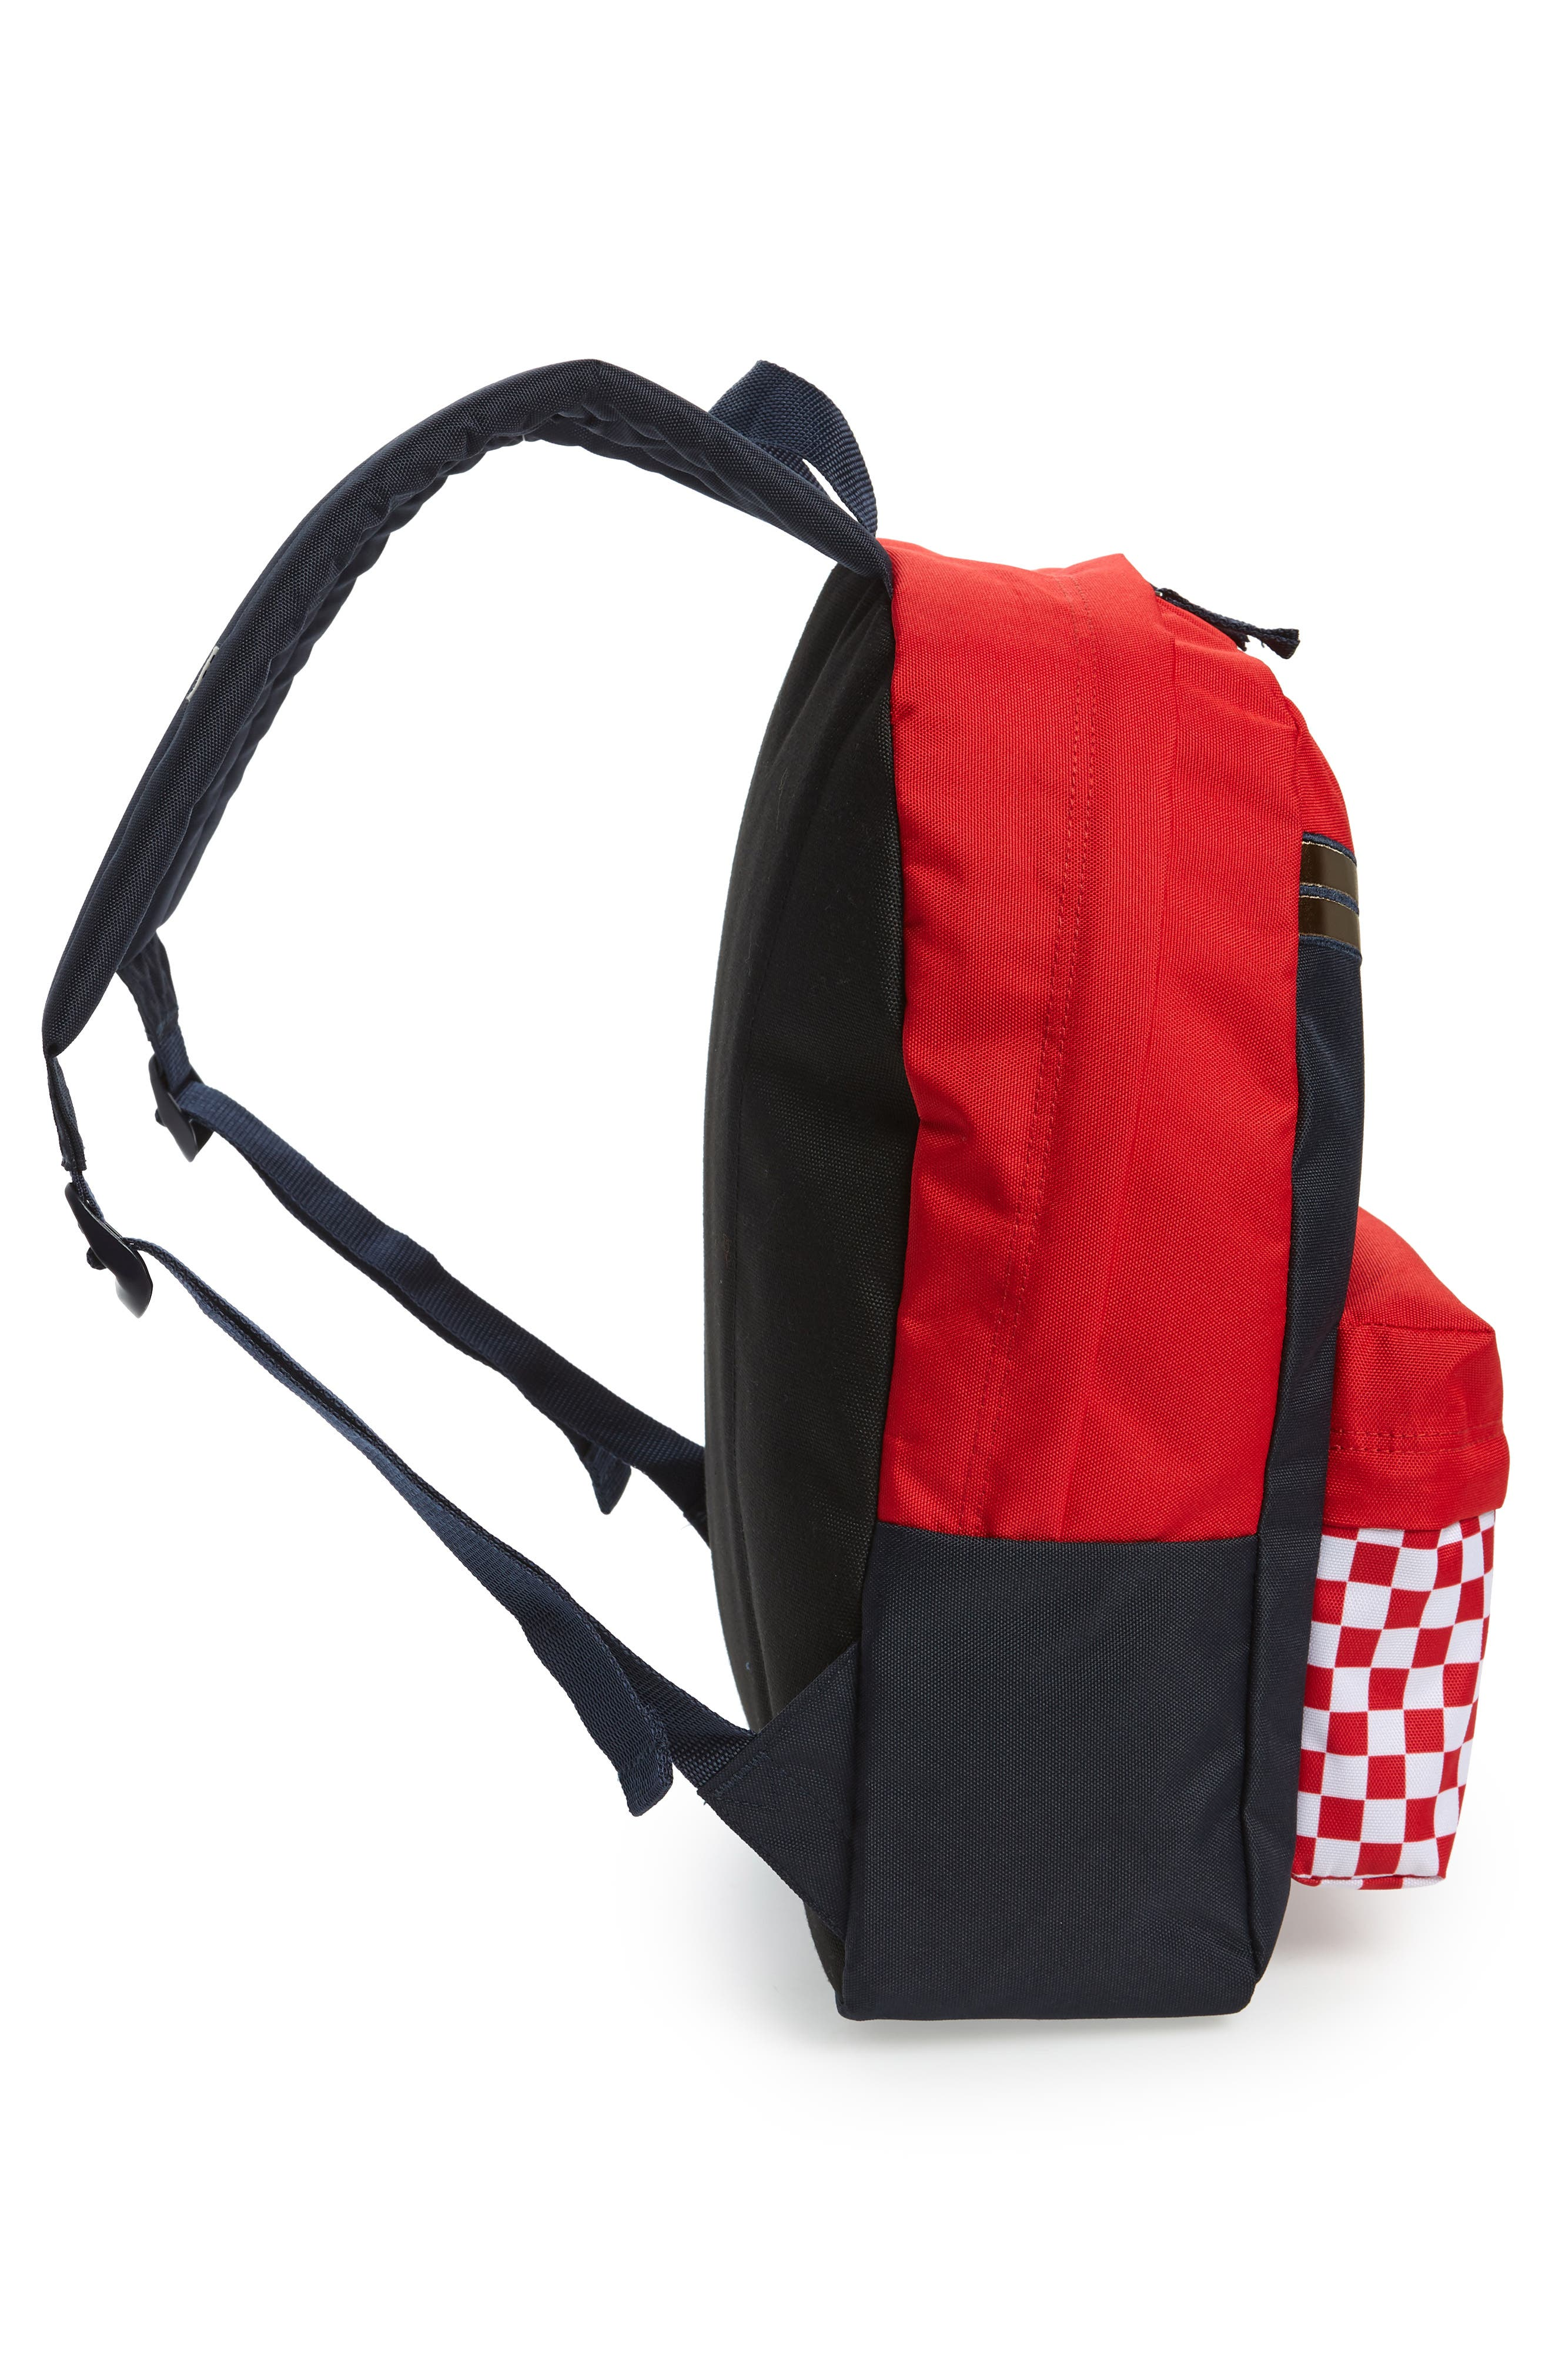 x Marvel<sup>®</sup> Captain Marvel Realm Backpack,                             Alternate thumbnail 4, color,                             601